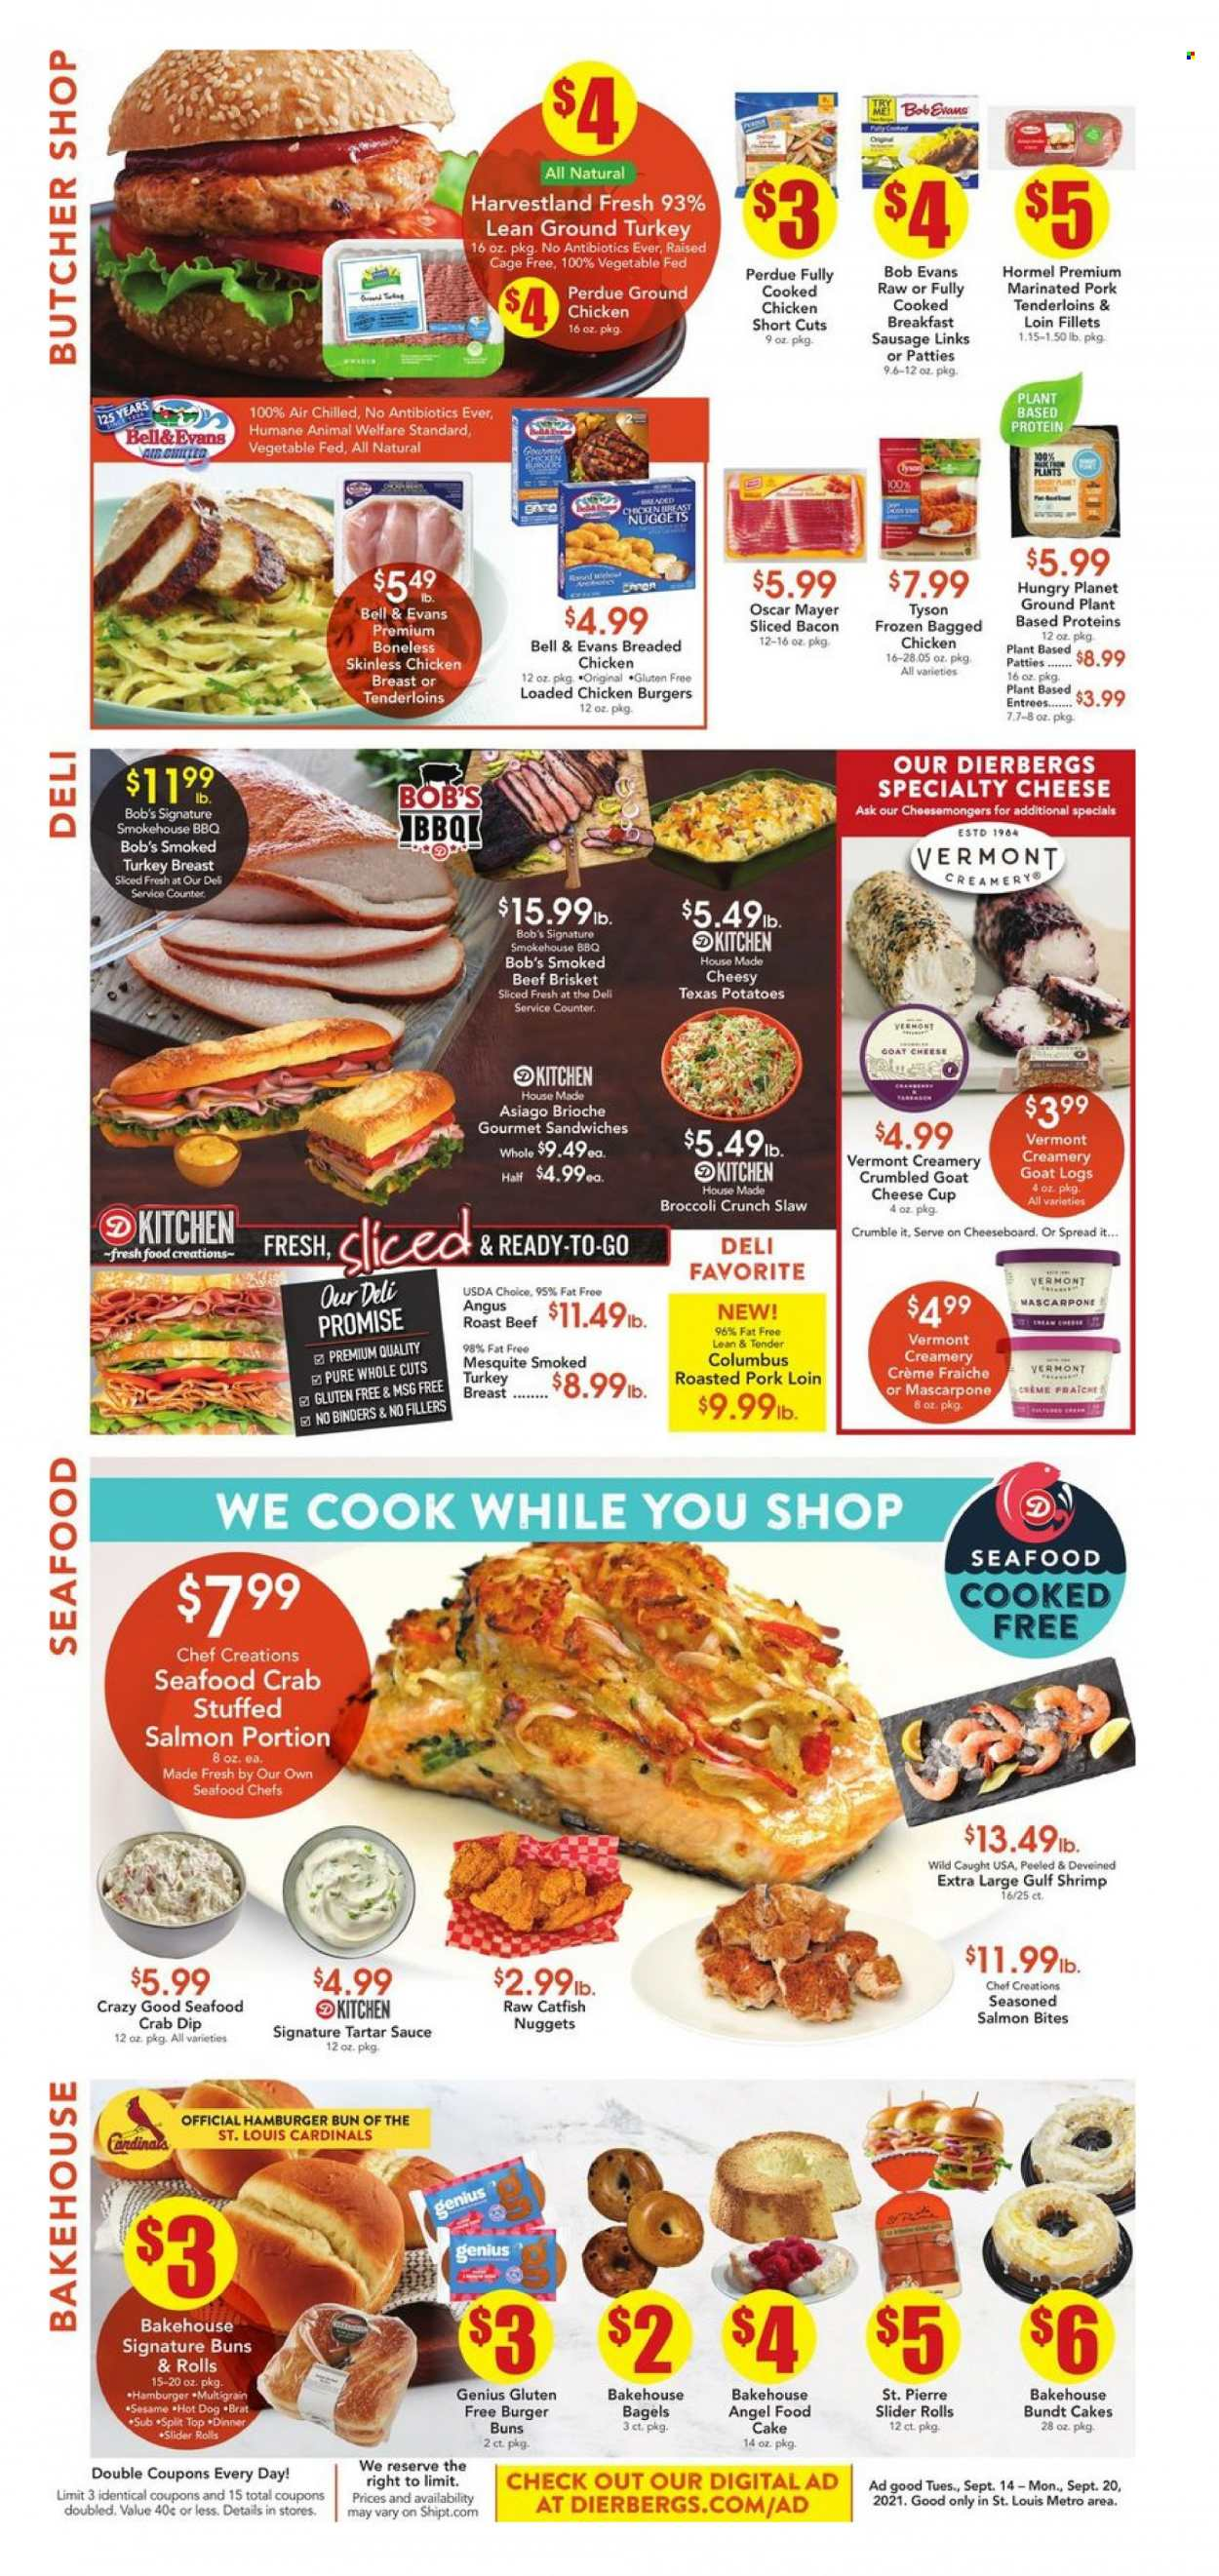 Dierbergs - Lakeview Pointe - Ad from september 14 to 20 2021 - Page 5